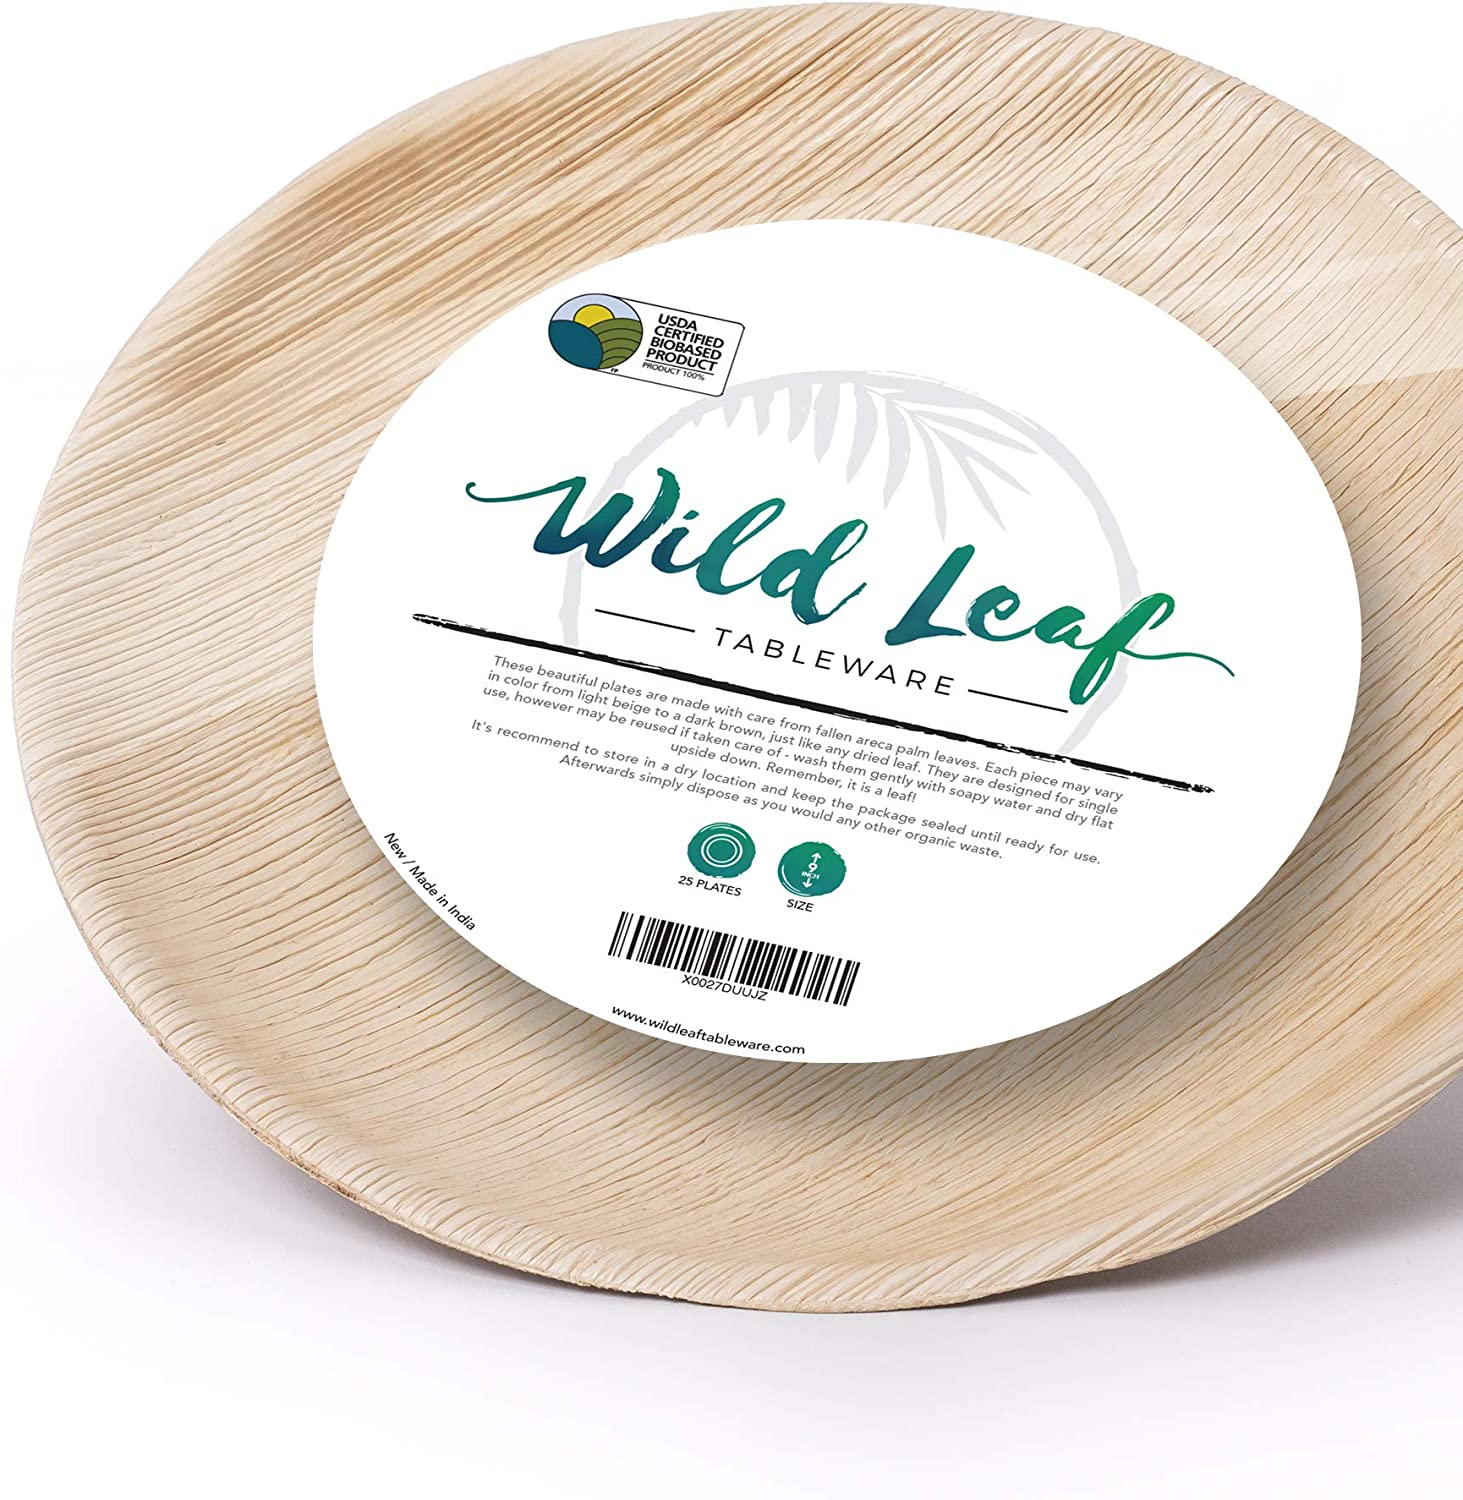 Wild Leaf Tableware Wooden Palm Leaf Plates - 9 Inch, Set of 25 Round Wood Plates - Elegant and Heavy Duty Upscale Disposable Dinnerware for Outdoor Parties, Picnics, BBQs